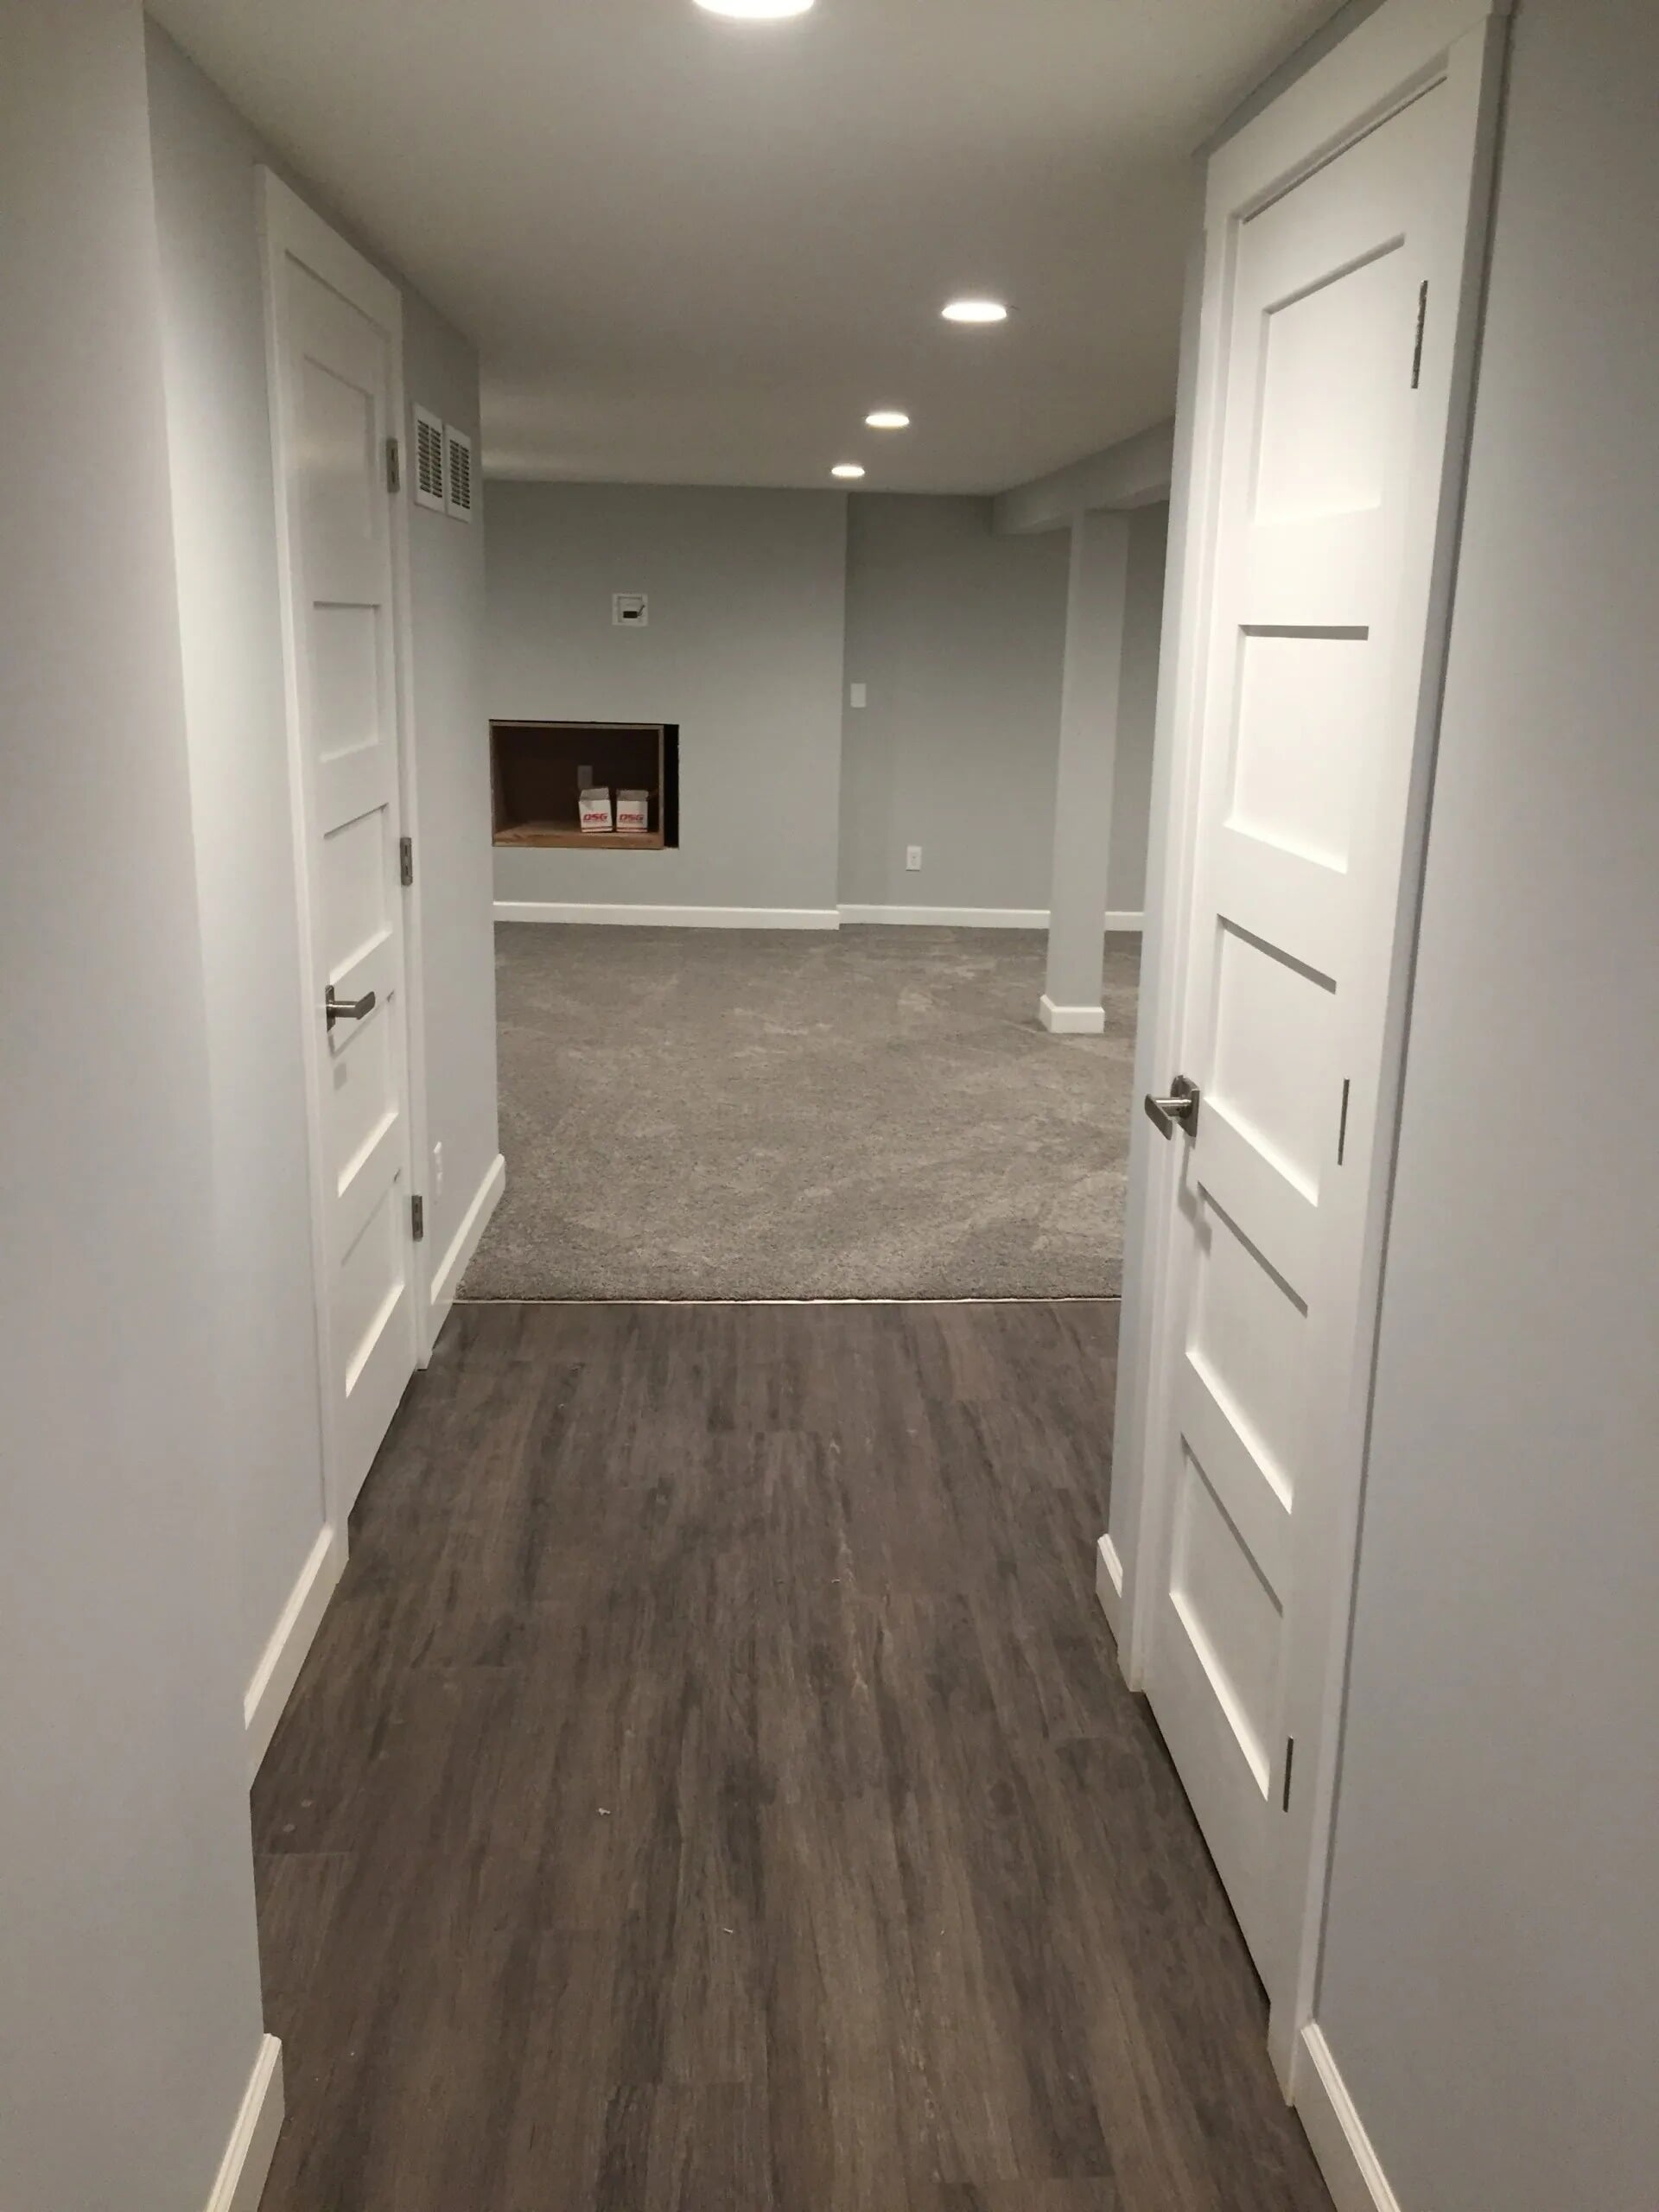 Hardwood and carpet installation in Lakeville, MN from Infinite Floors and More